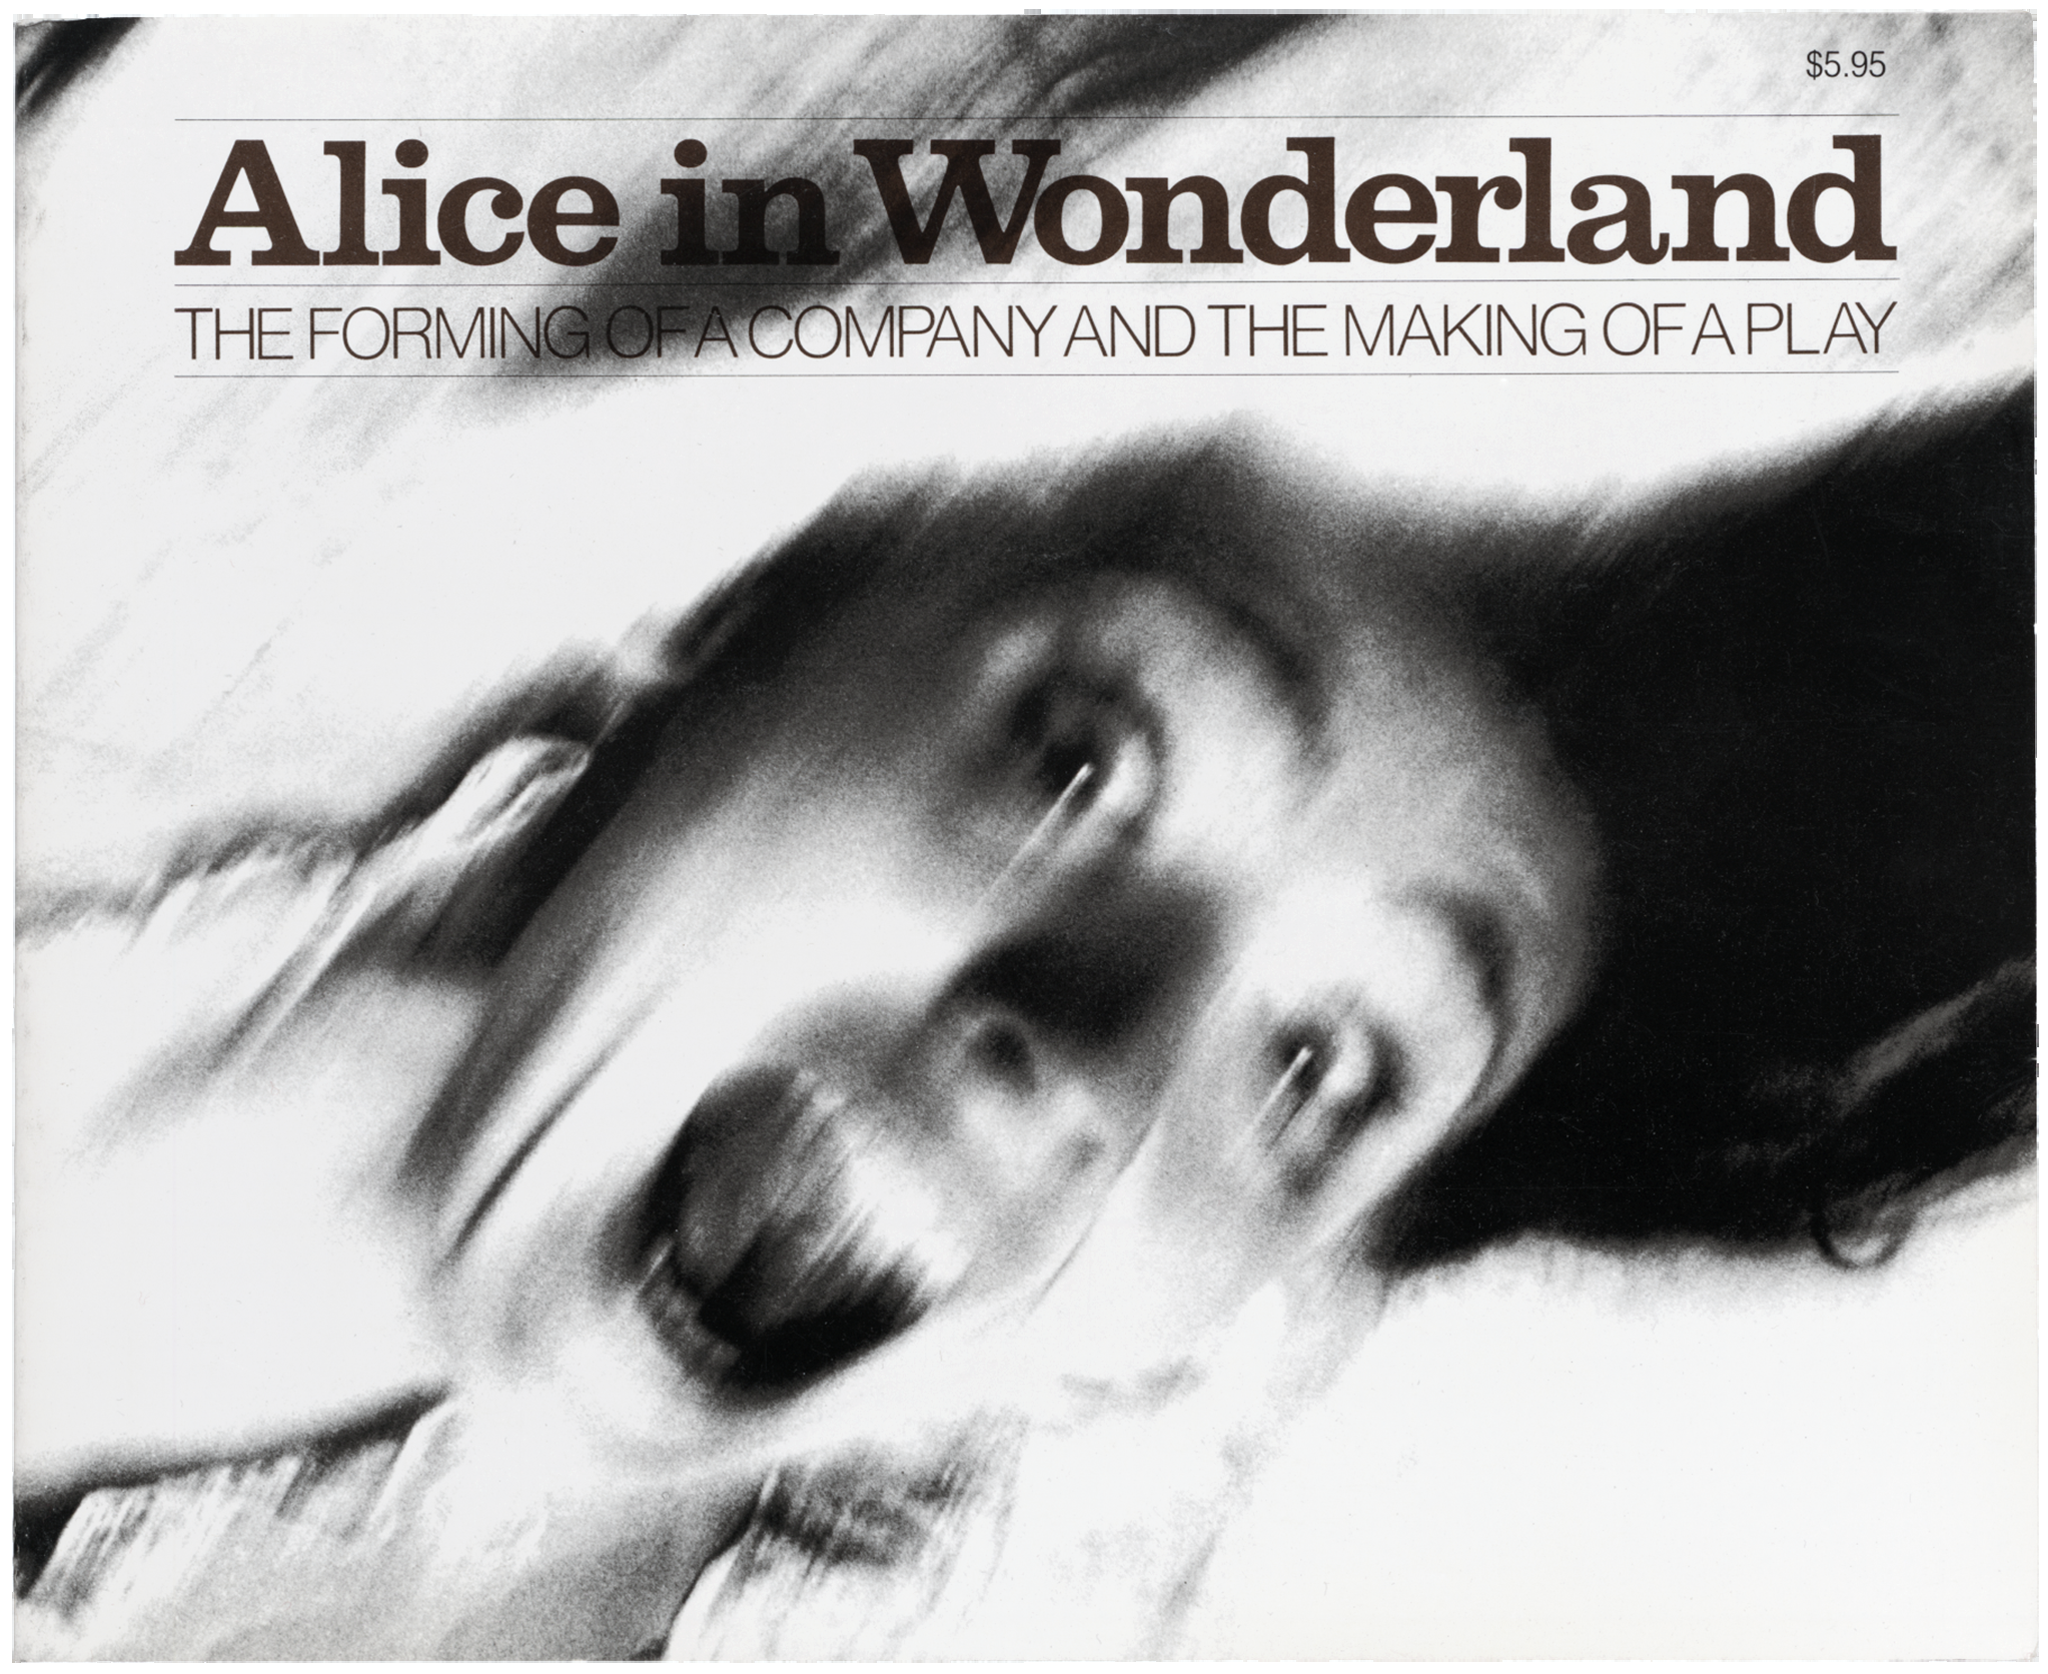 Alice in Wonderland, The Forming of a Company and the Making of a Play    (1973), text by Doon Arbus